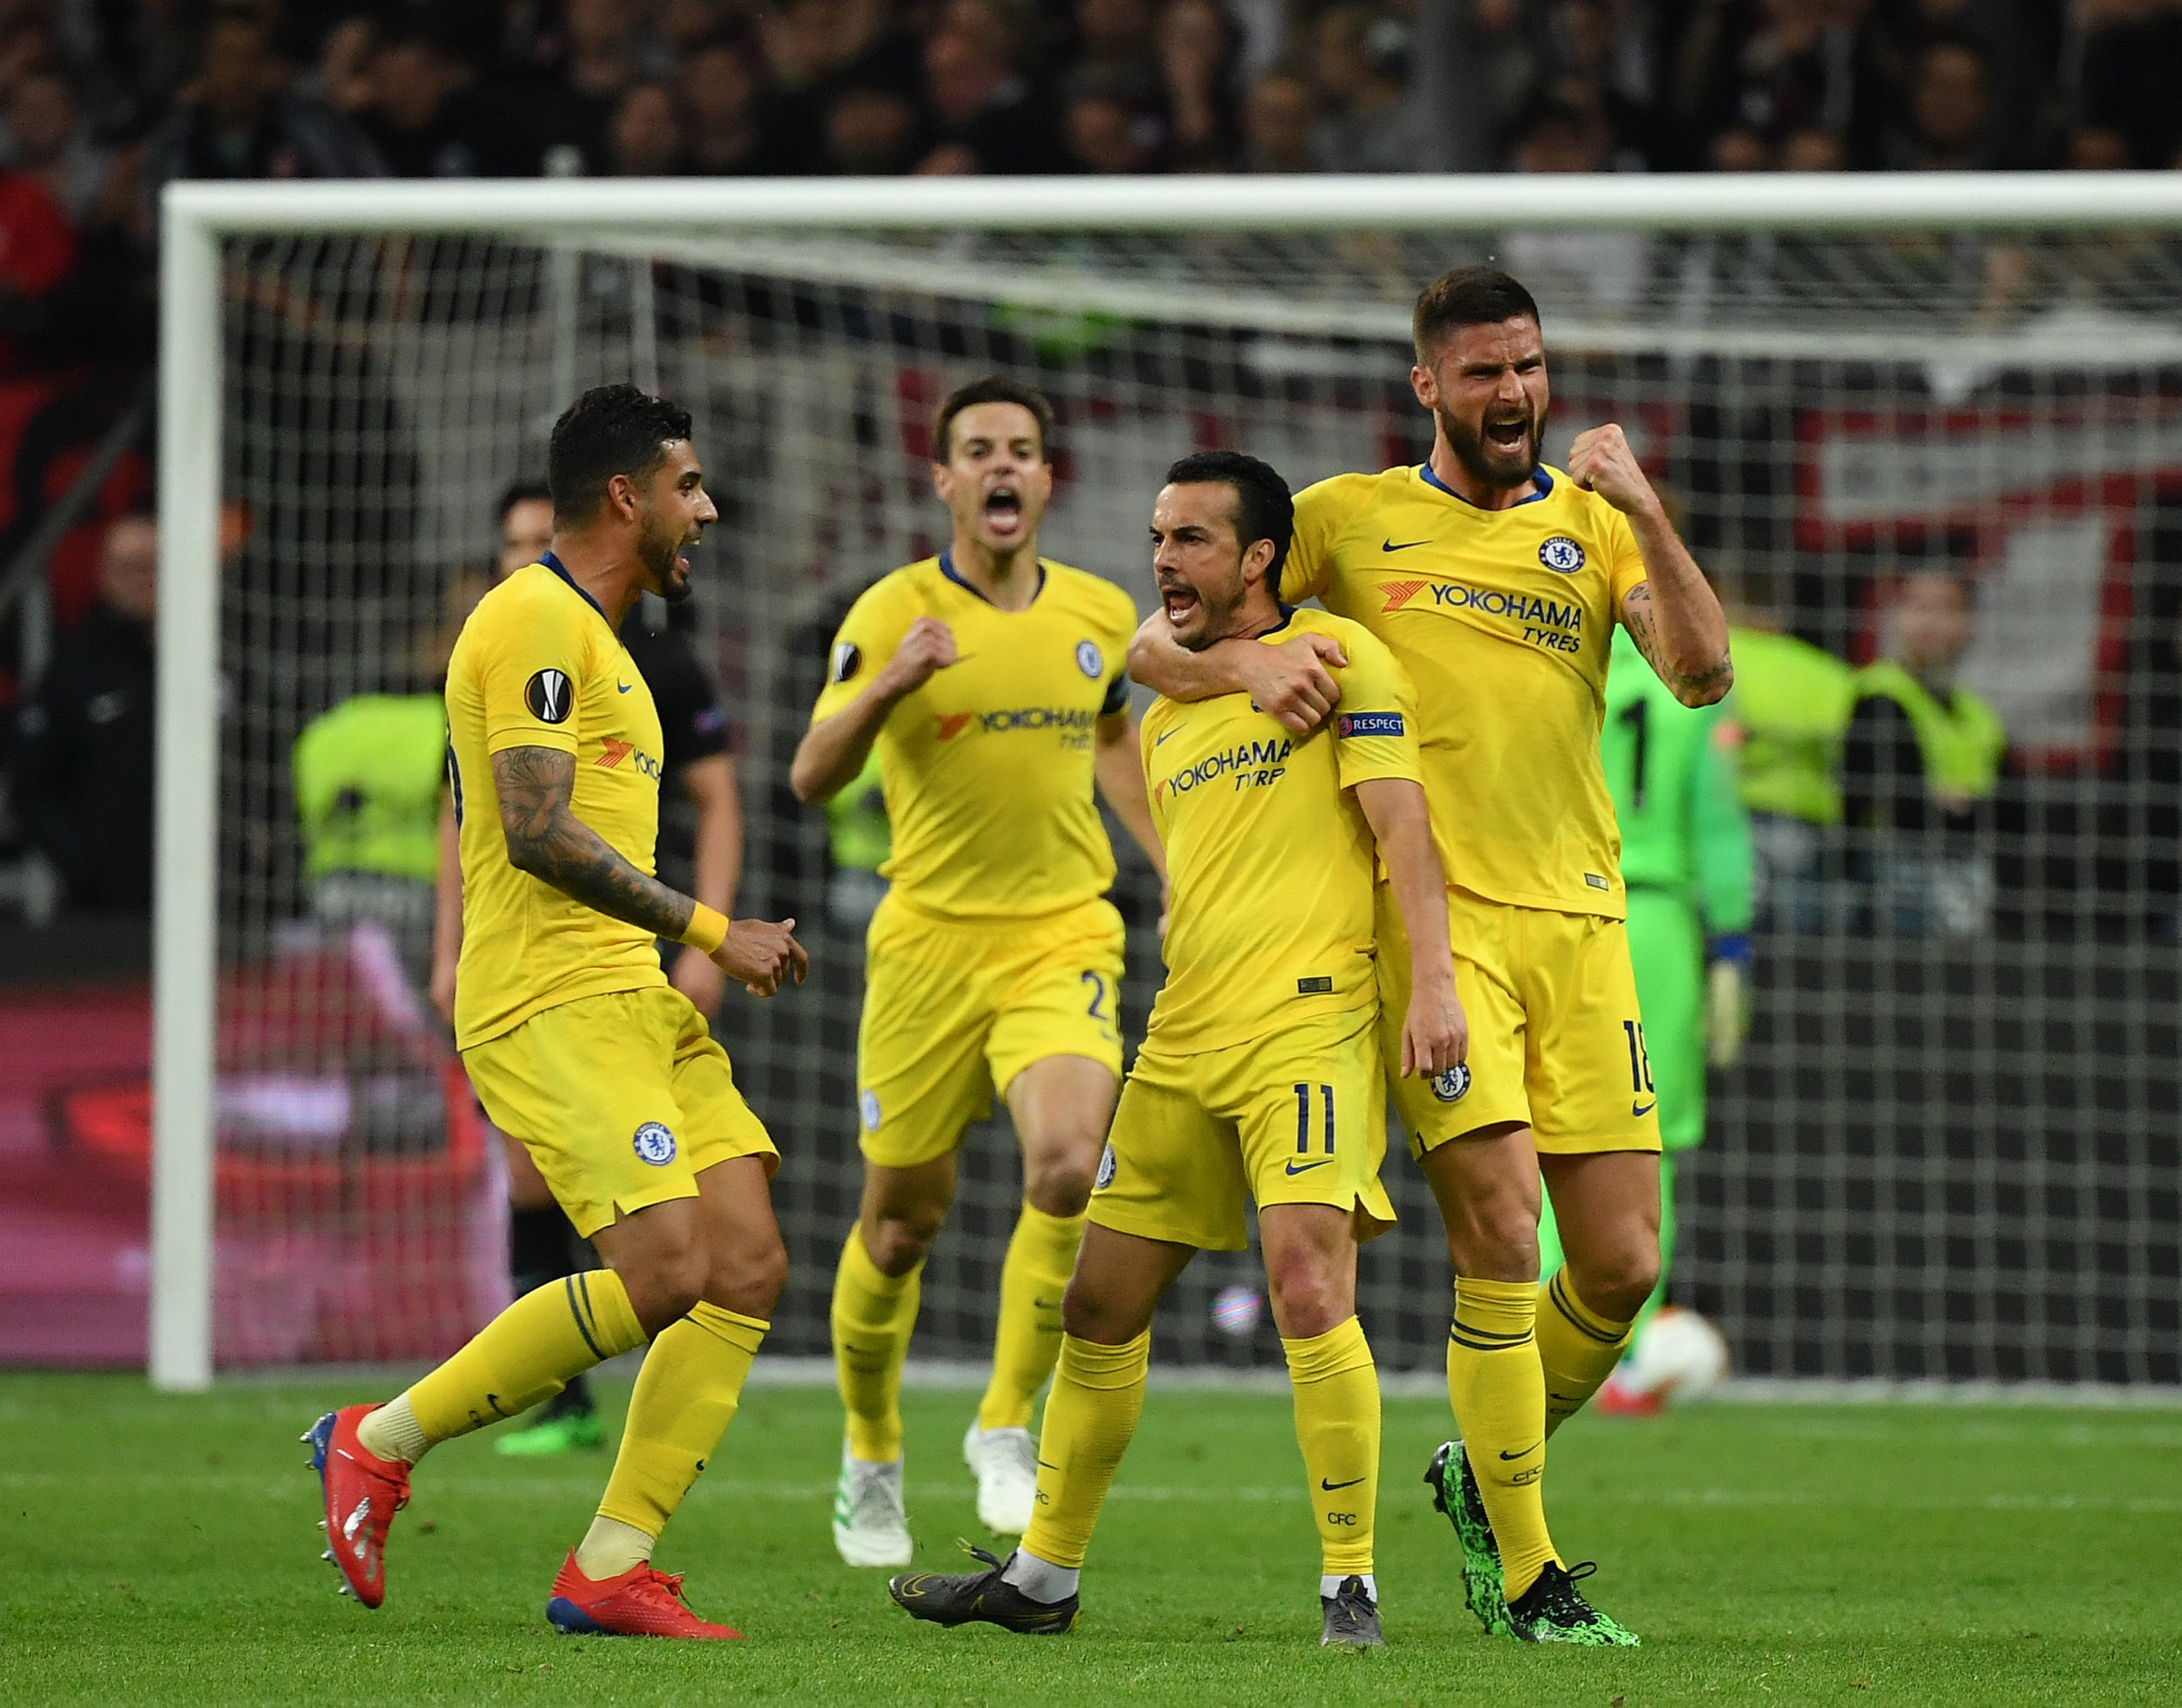 Chelsea vs Eintracht Frankfurt TV channel, live stream, time, odds and team news for Europa League semi-final